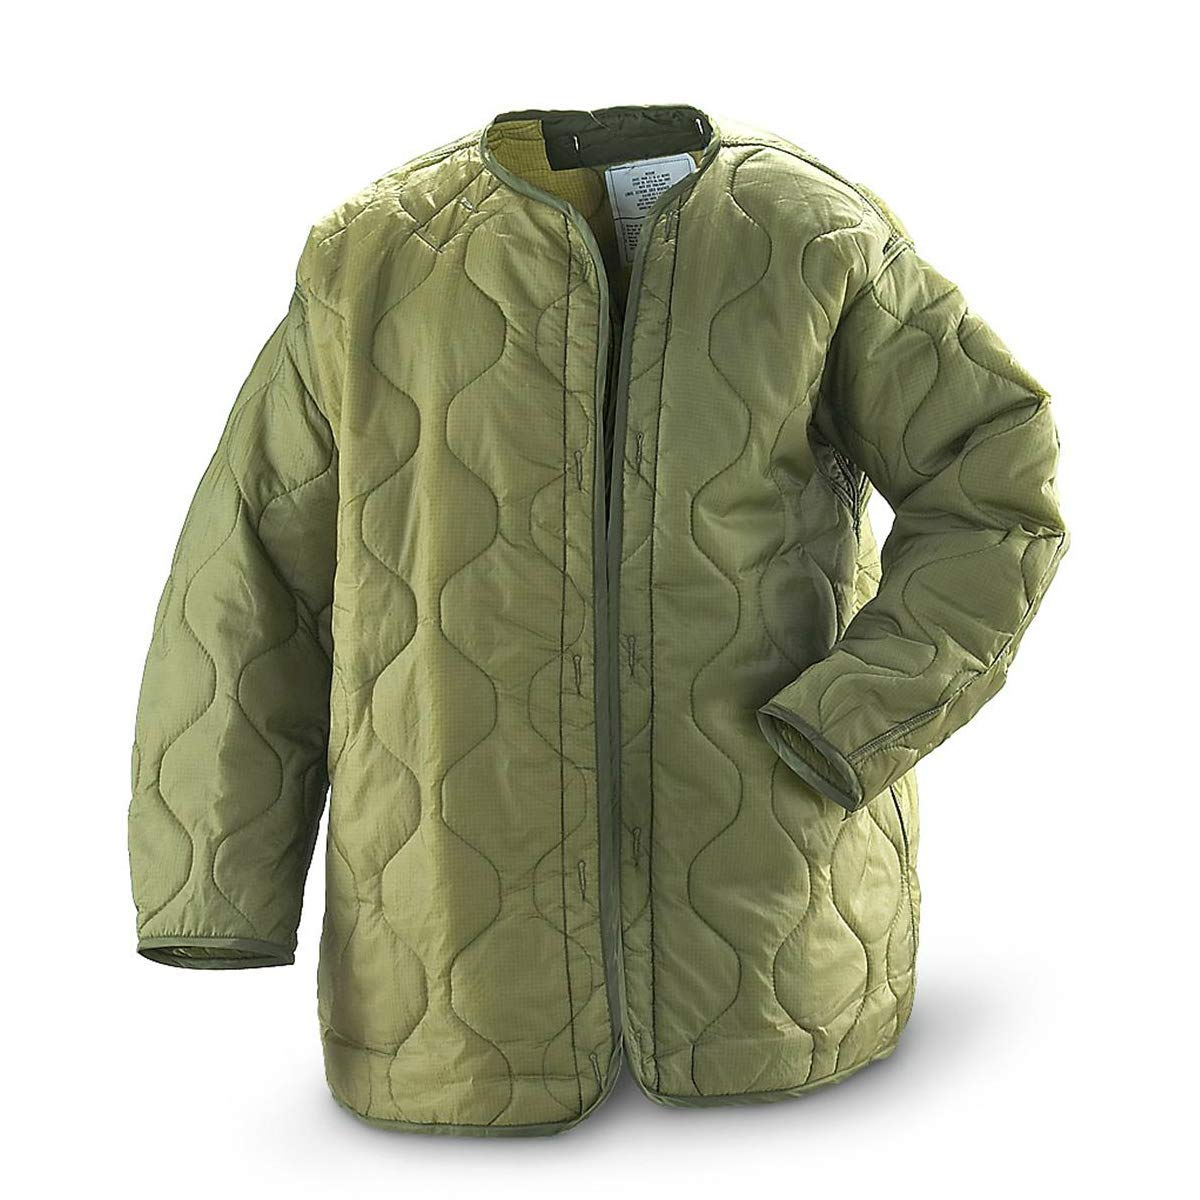 Amazon.com  New US Army Military M65 Unicor Field Jacket Quilted Foliage  Green Coat Liner M-65 L Large  Clothing 58472fe7029